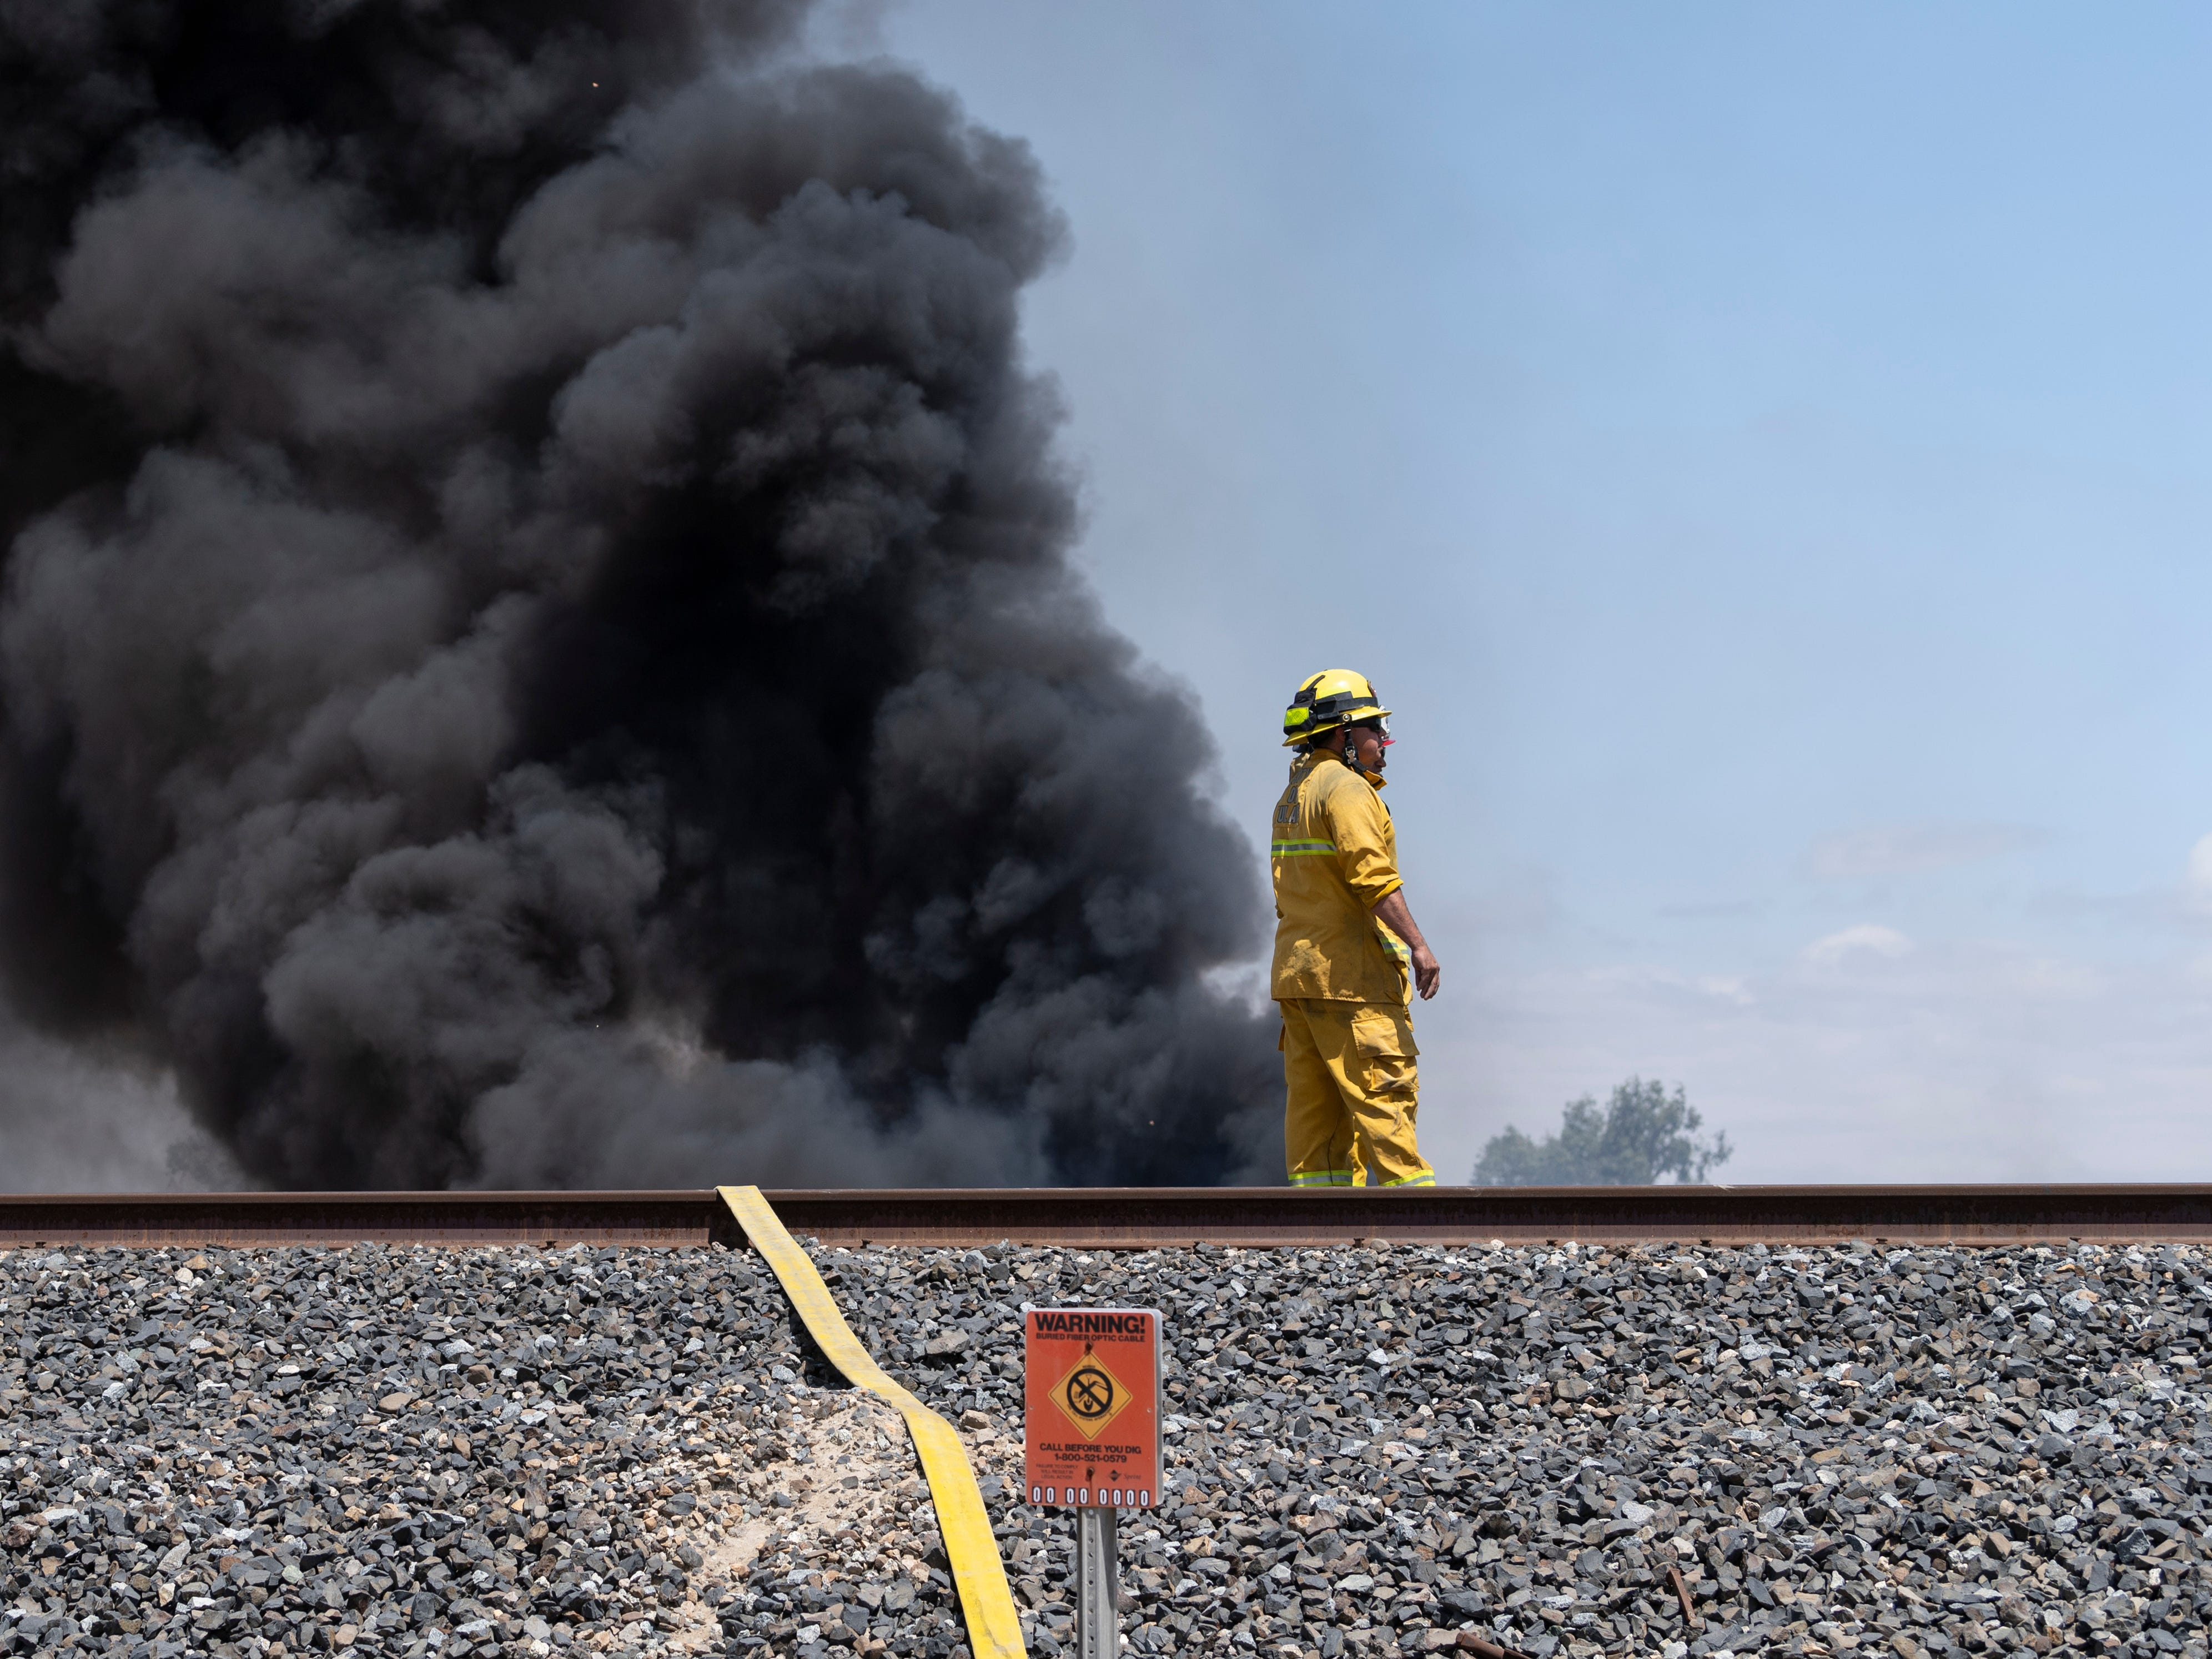 Tulare County firefighter assisted Tulare City Fire Department with a grass fire that ignited tires behind a business on K Street just south of Paige Avenue on Tuesday, April 30, 2019.